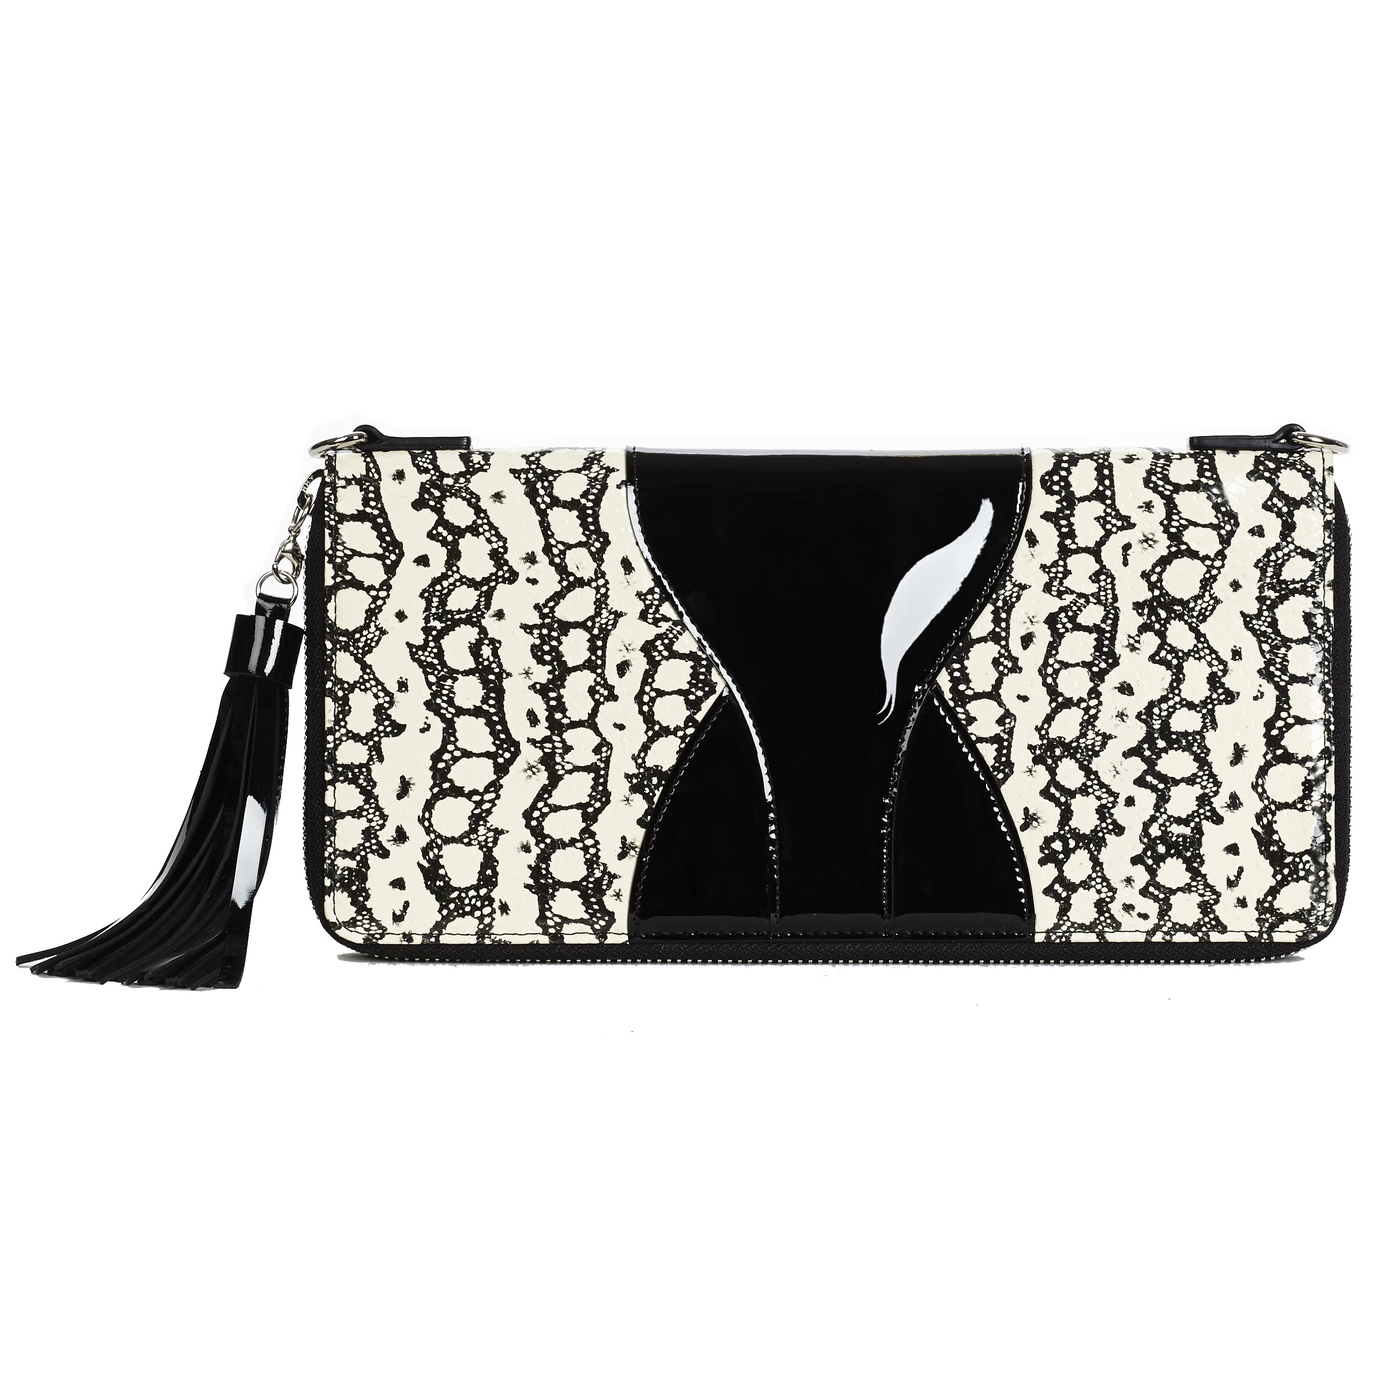 Monster Motif & Dazzling Dark - $295.00